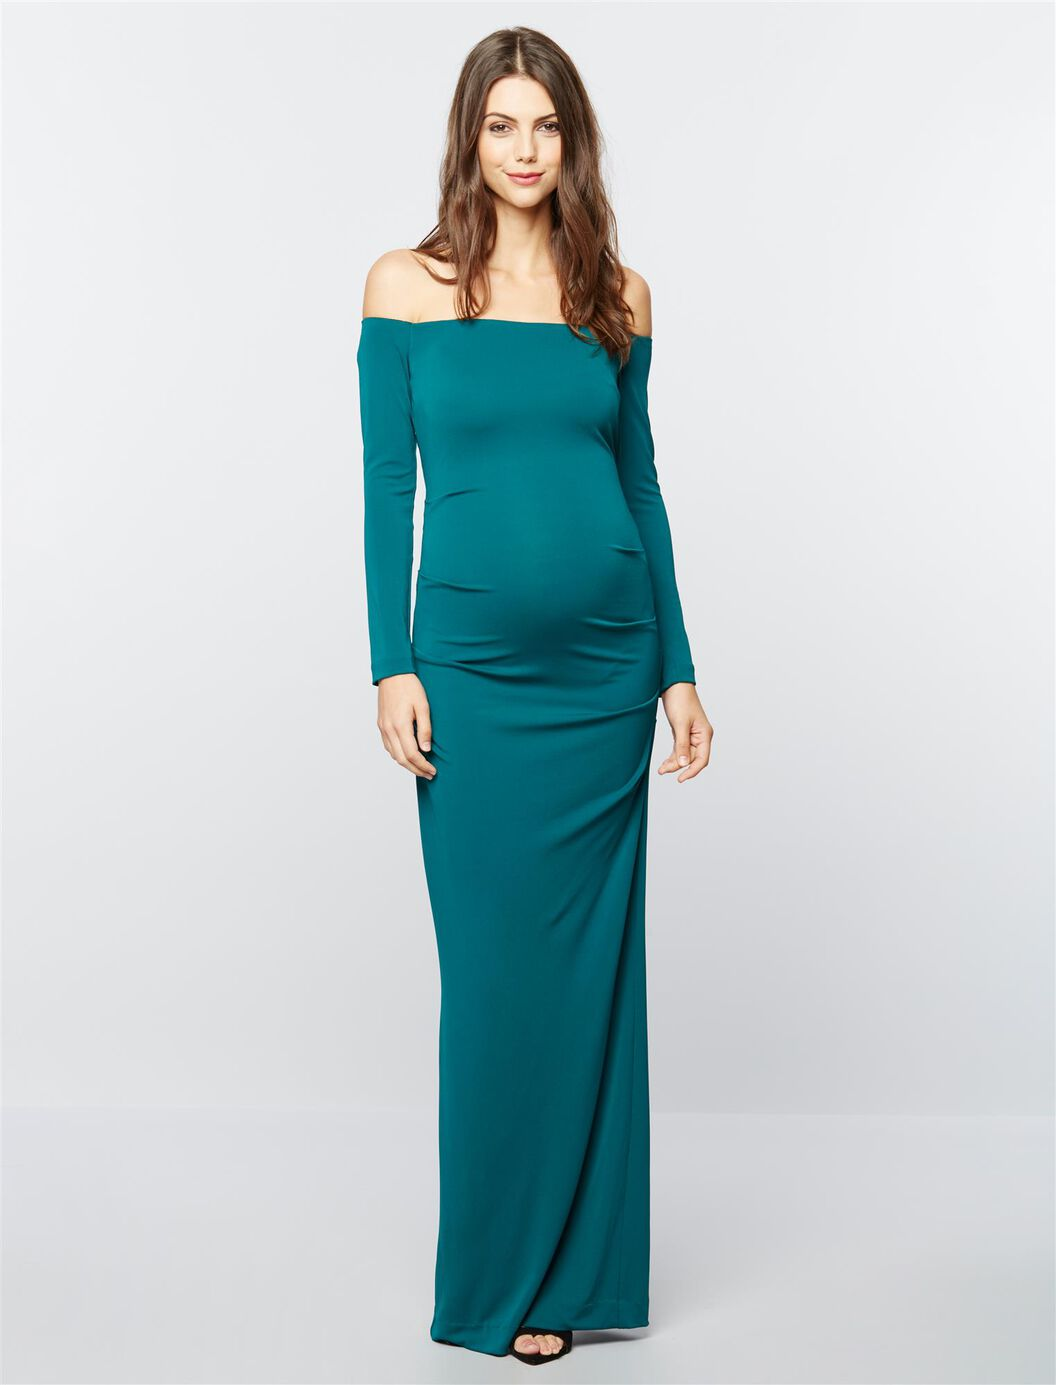 Nicole miller maternity special occasion dress destination maternity nicole miller maternity special occasion dress green ombrellifo Gallery